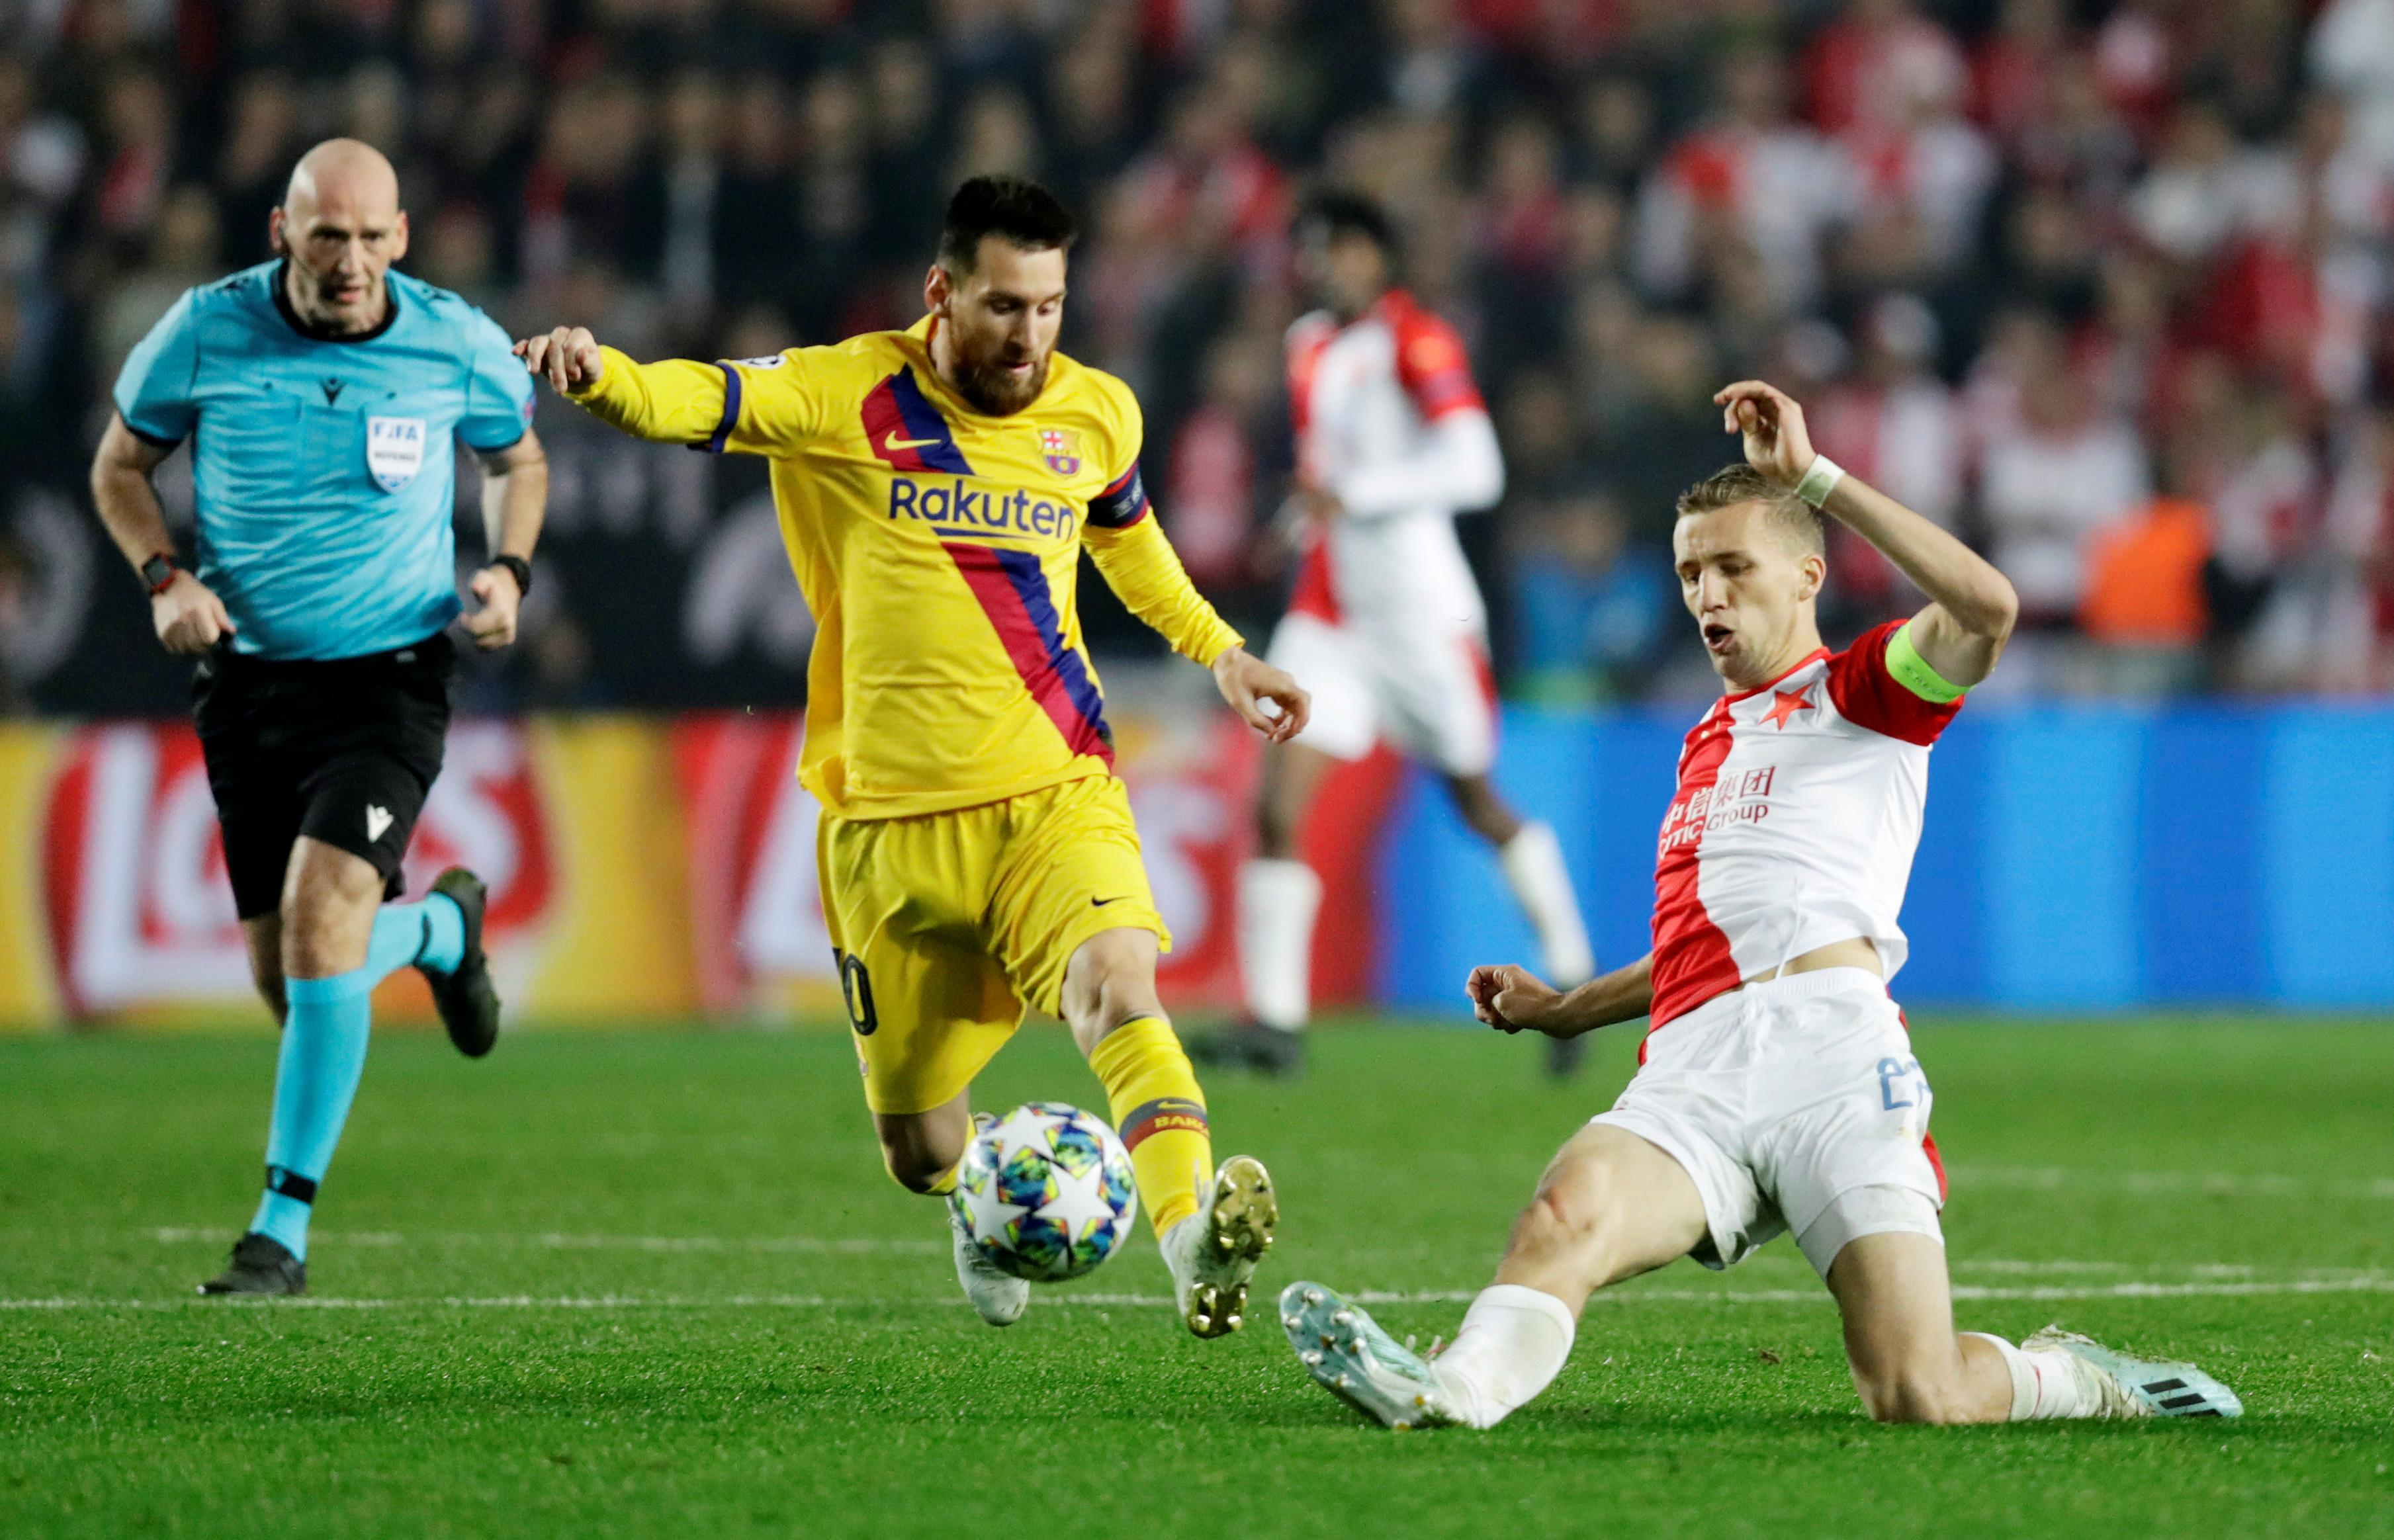 Messi leads Barca past Slavia Prague 2-1 in Champions League